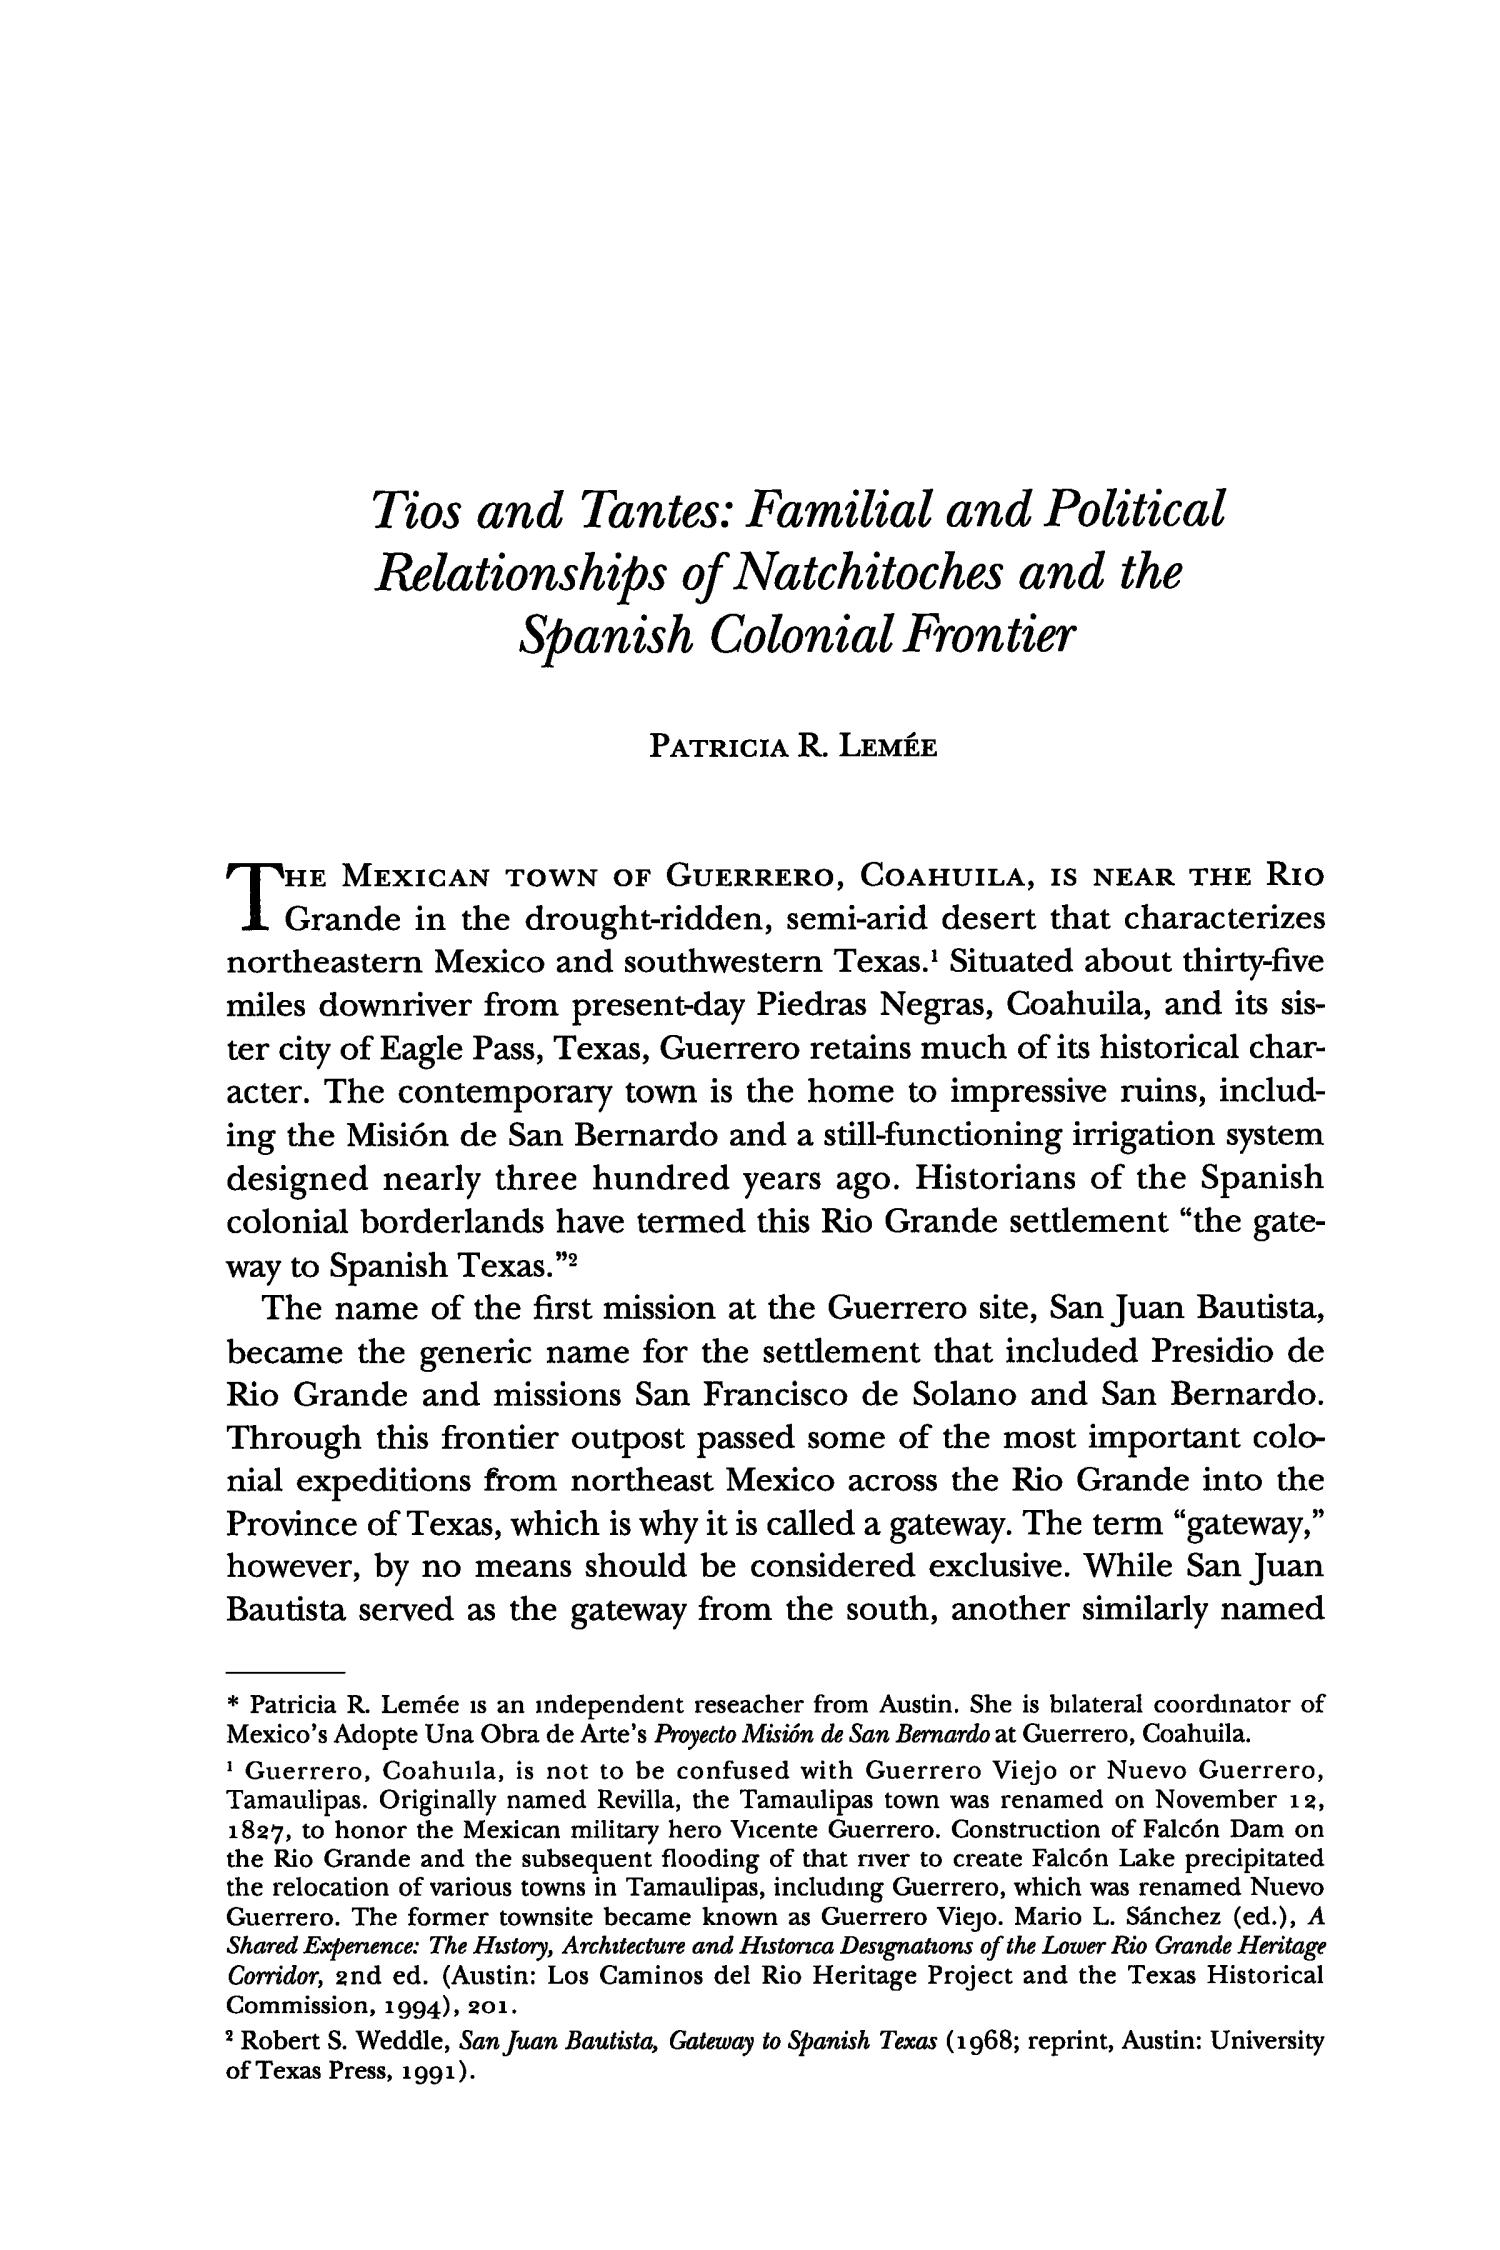 The Southwestern Historical Quarterly, Volume 101, July 1997 - April, 1998                                                                                                      341